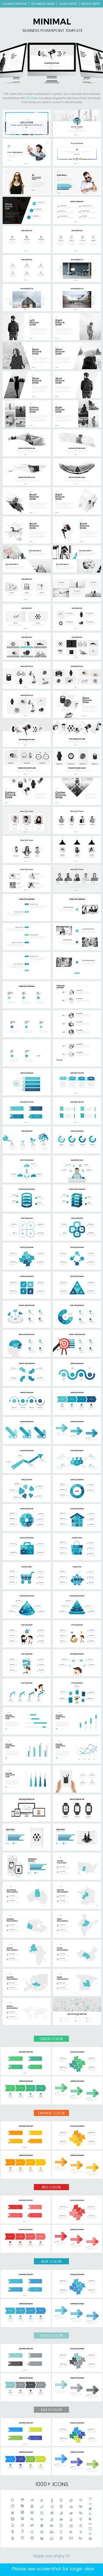 Minimal Business Powerpoint Template — Powerpoint PPTX #multipurpose #analysis • Download ➝ https://graphicriver.net/item/minimal-business-powerpoint-template/19894101?ref=pxcr